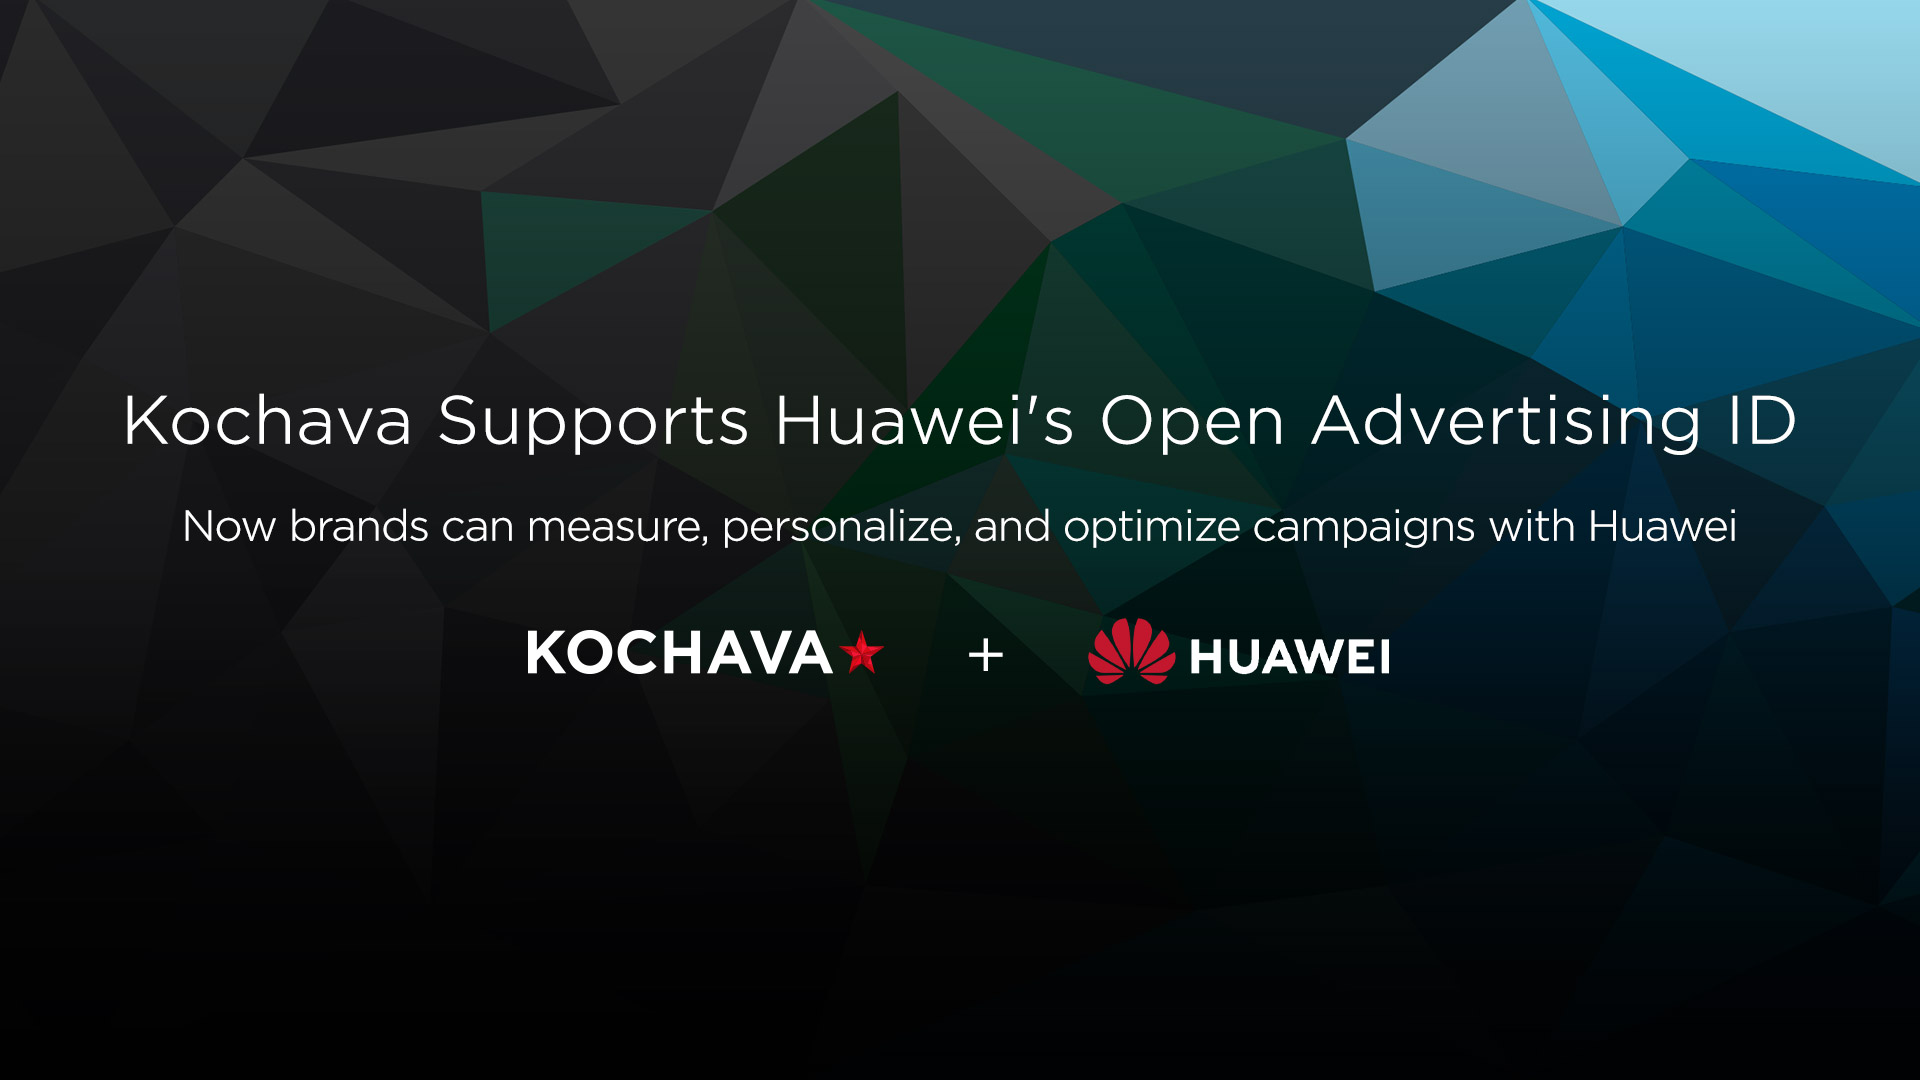 Kochava Supports Huawei's Open Advertising ID